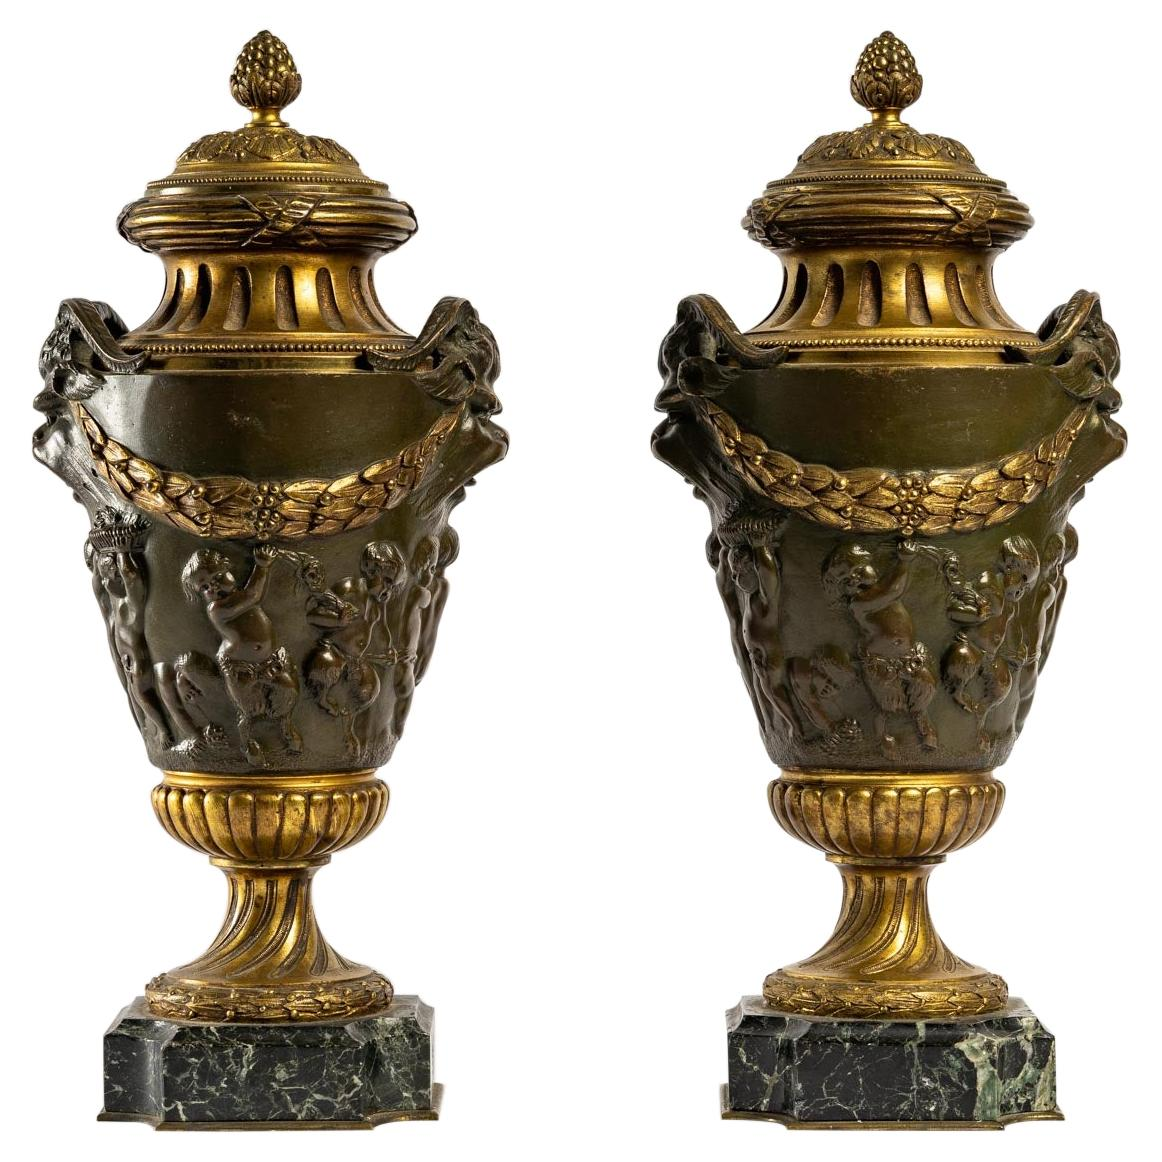 Pair of Patinated and Gilt Bronze Cassolettes